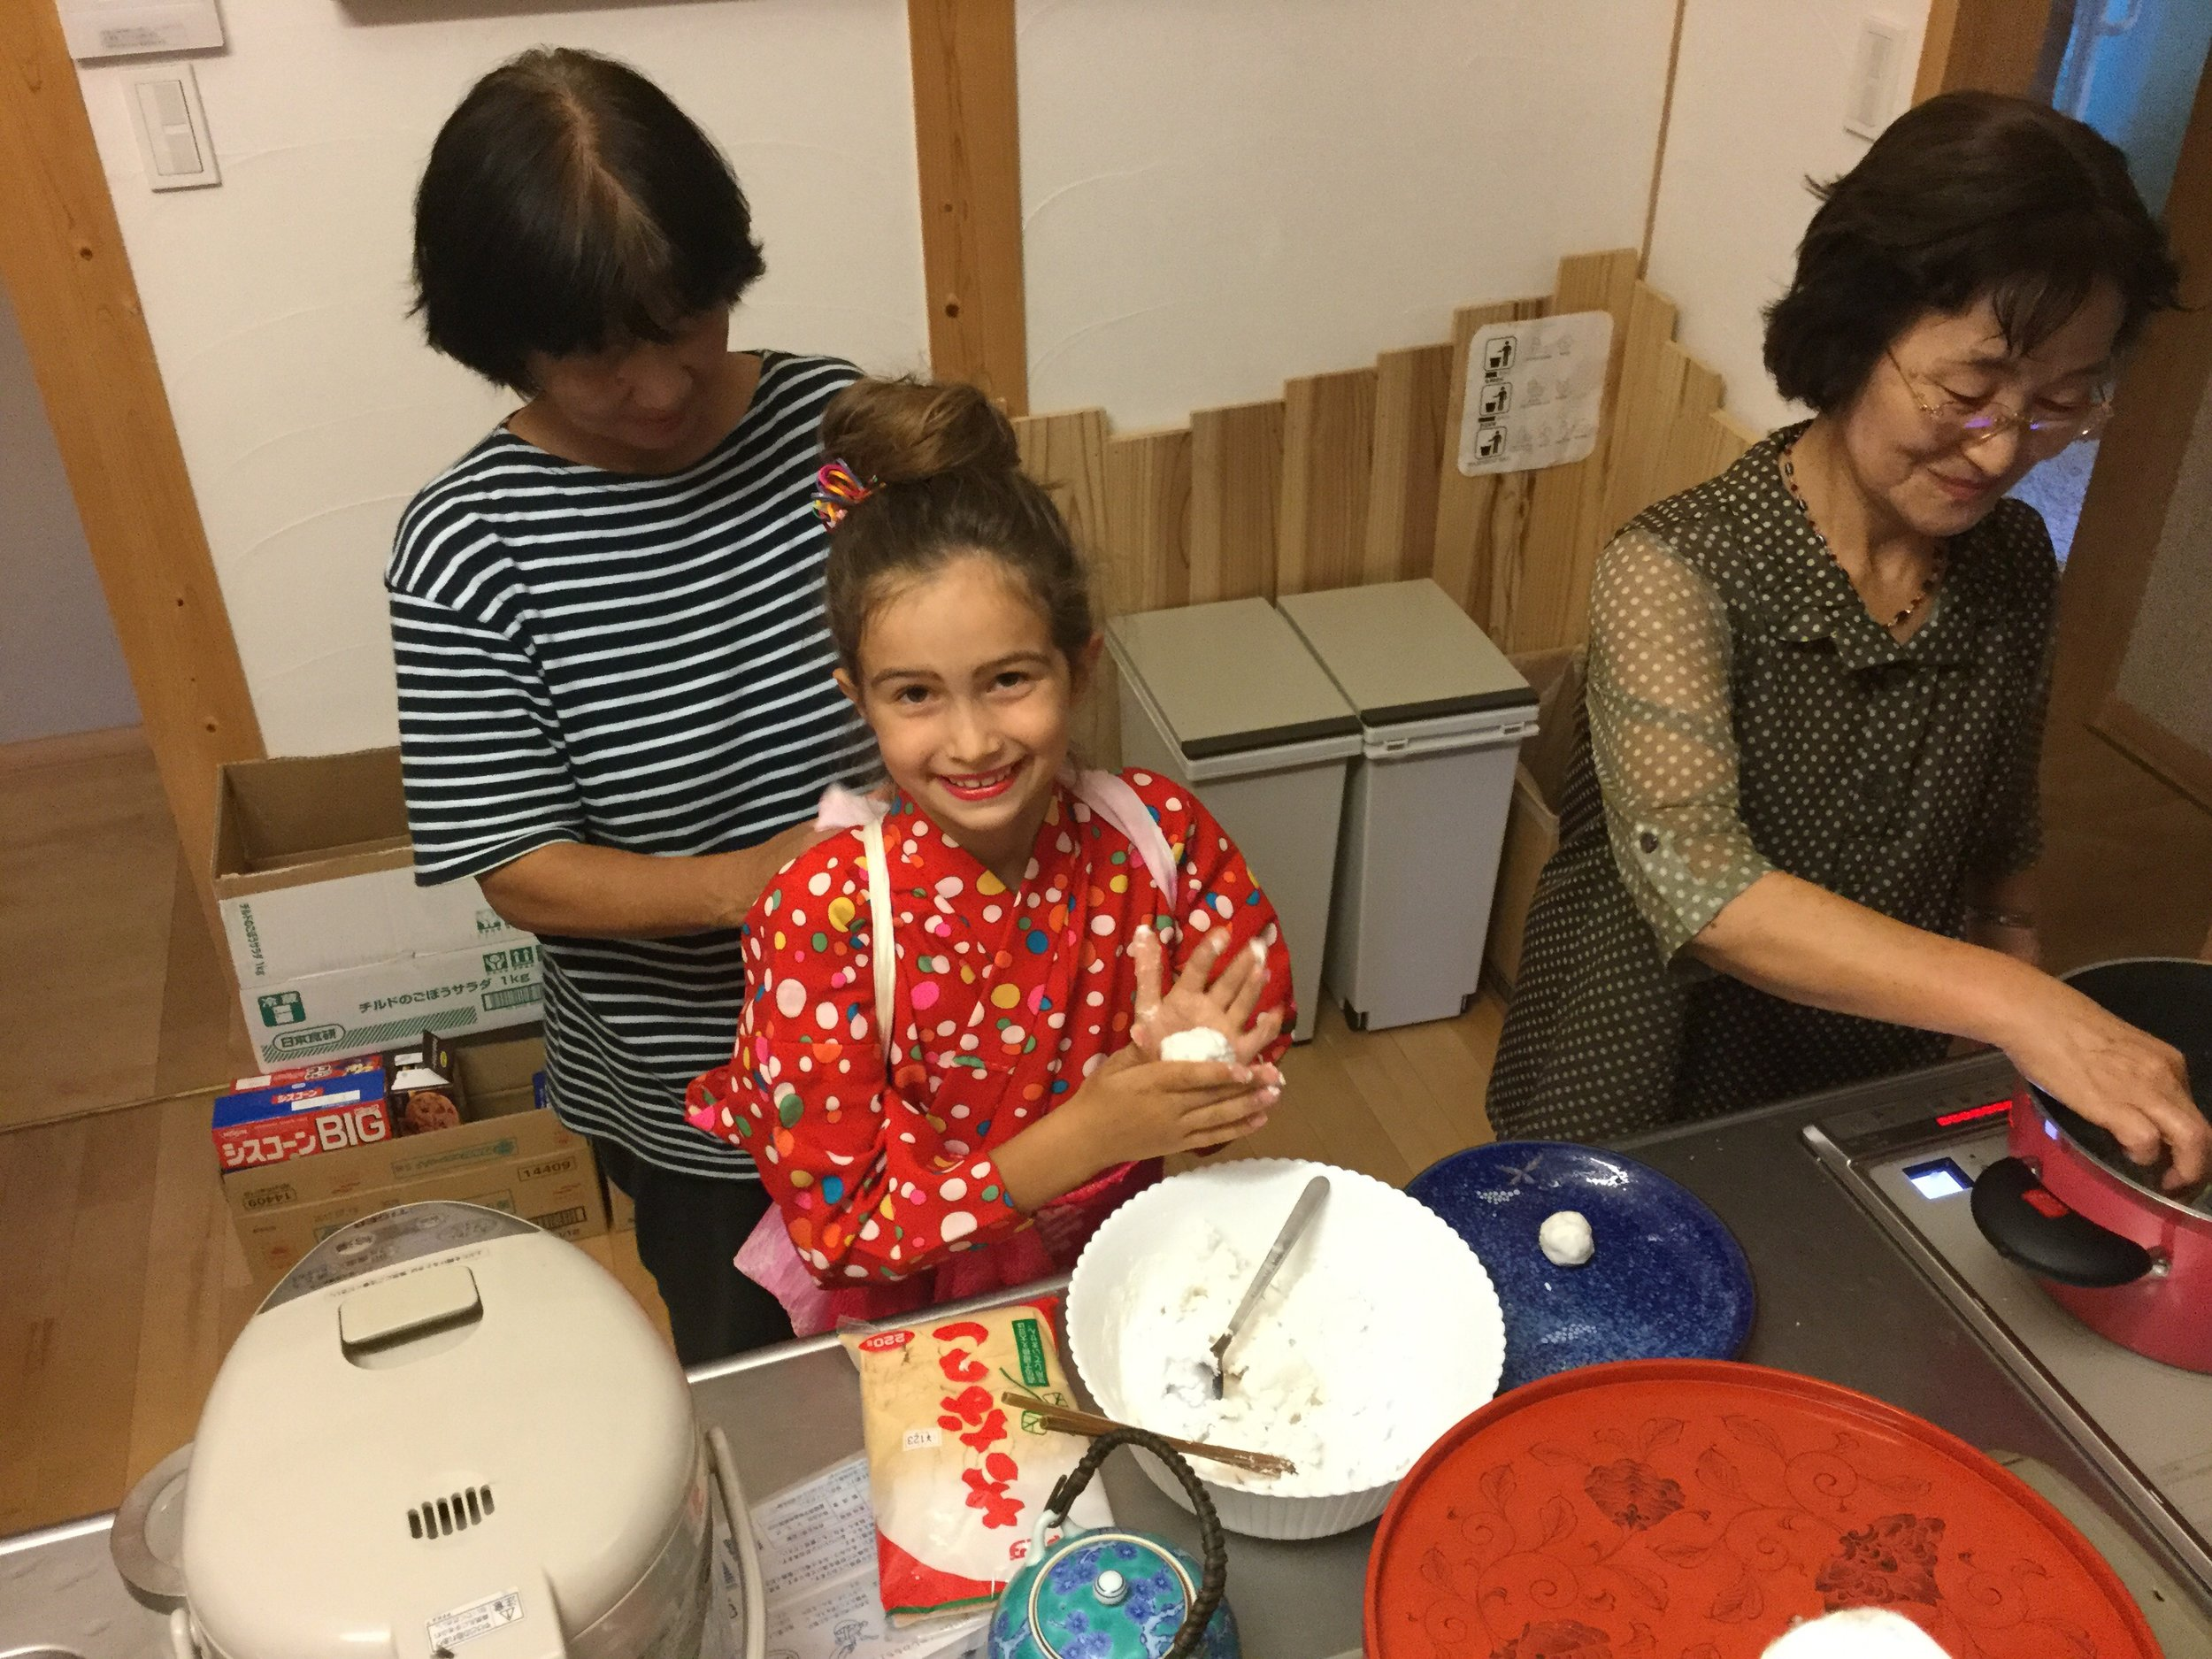 Have an assistant tie your kimono sleeves back so they don't get messy. Have other assistant start cooking dango balls by dumping them into boiling water.